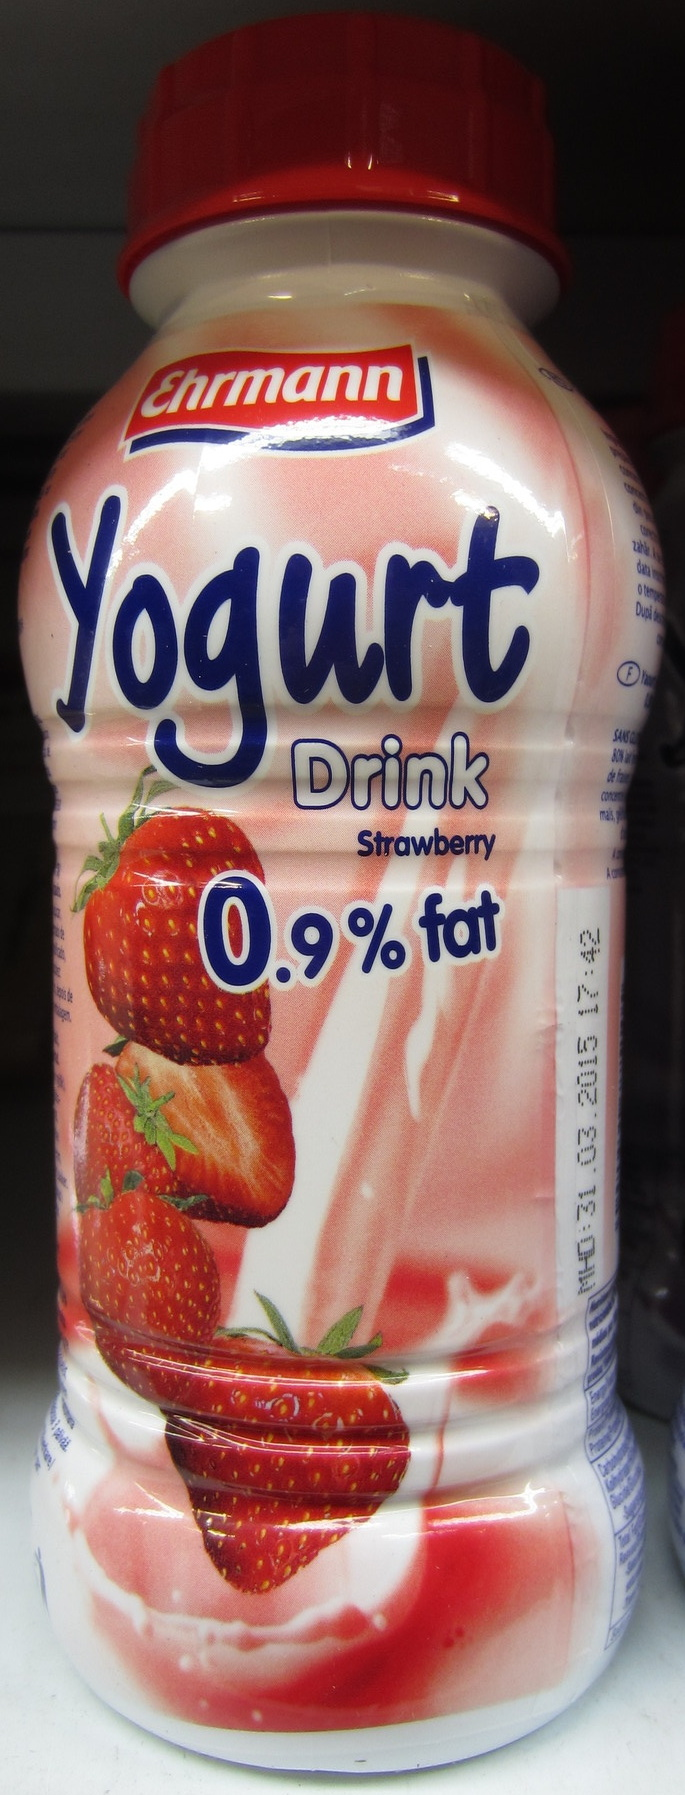 Yogurt Drink Strawberry - Product